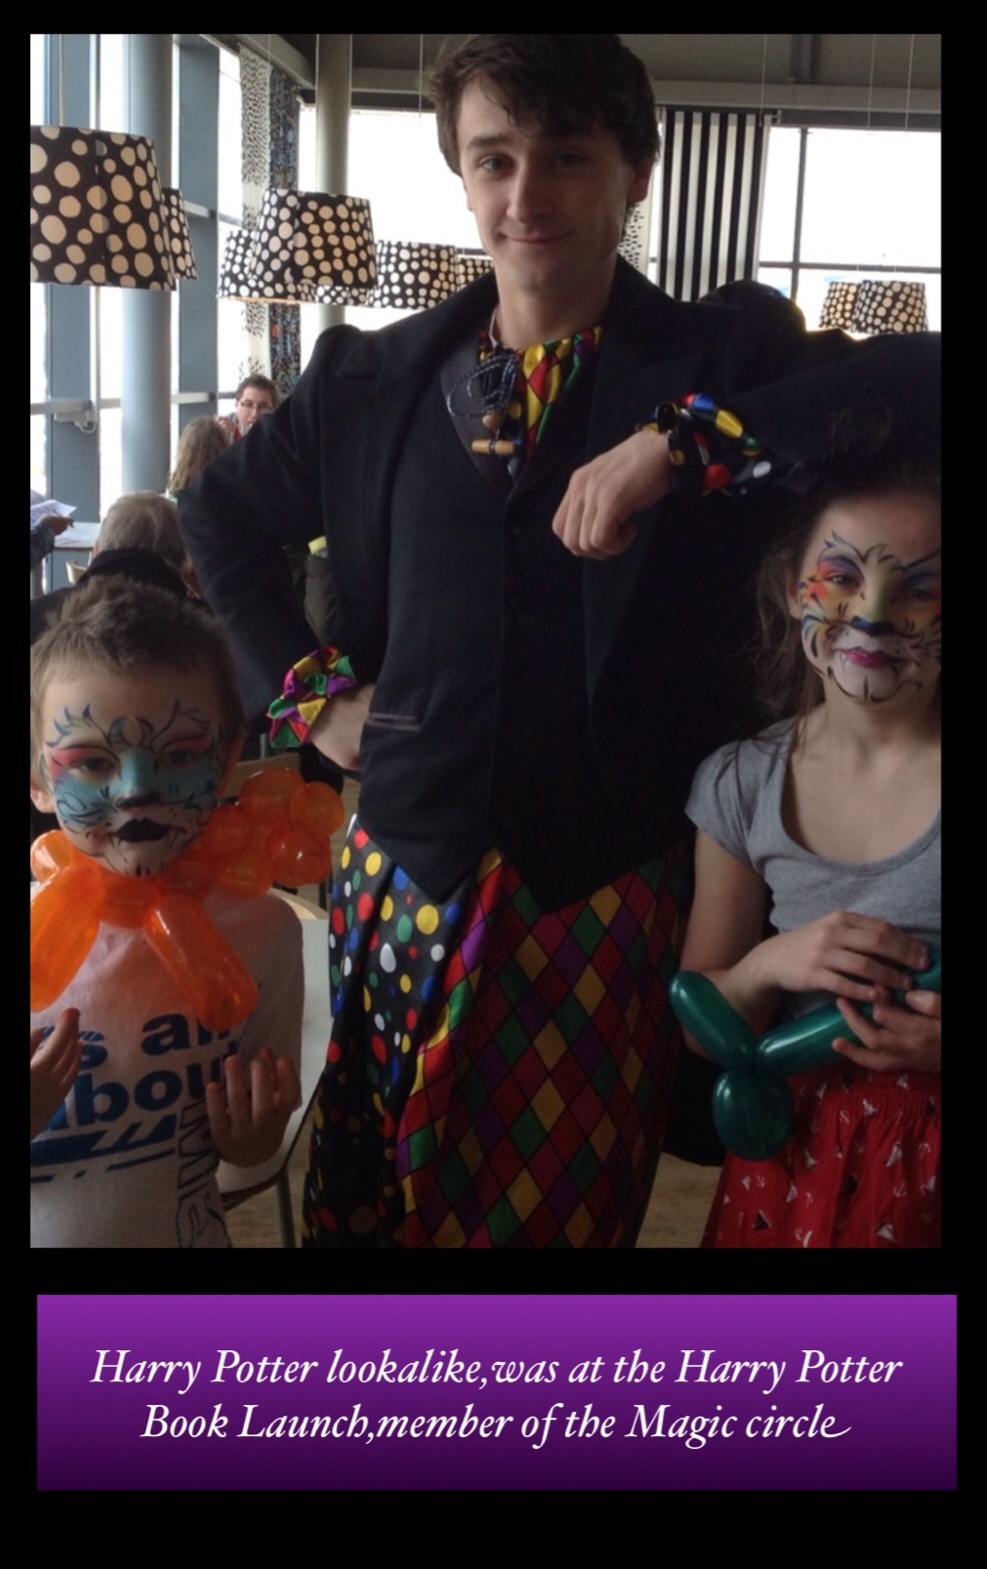 London Face Painters can supply other children's entertainers for your children's party, here is our Harry Potter look alike and magician Children's Entertainer